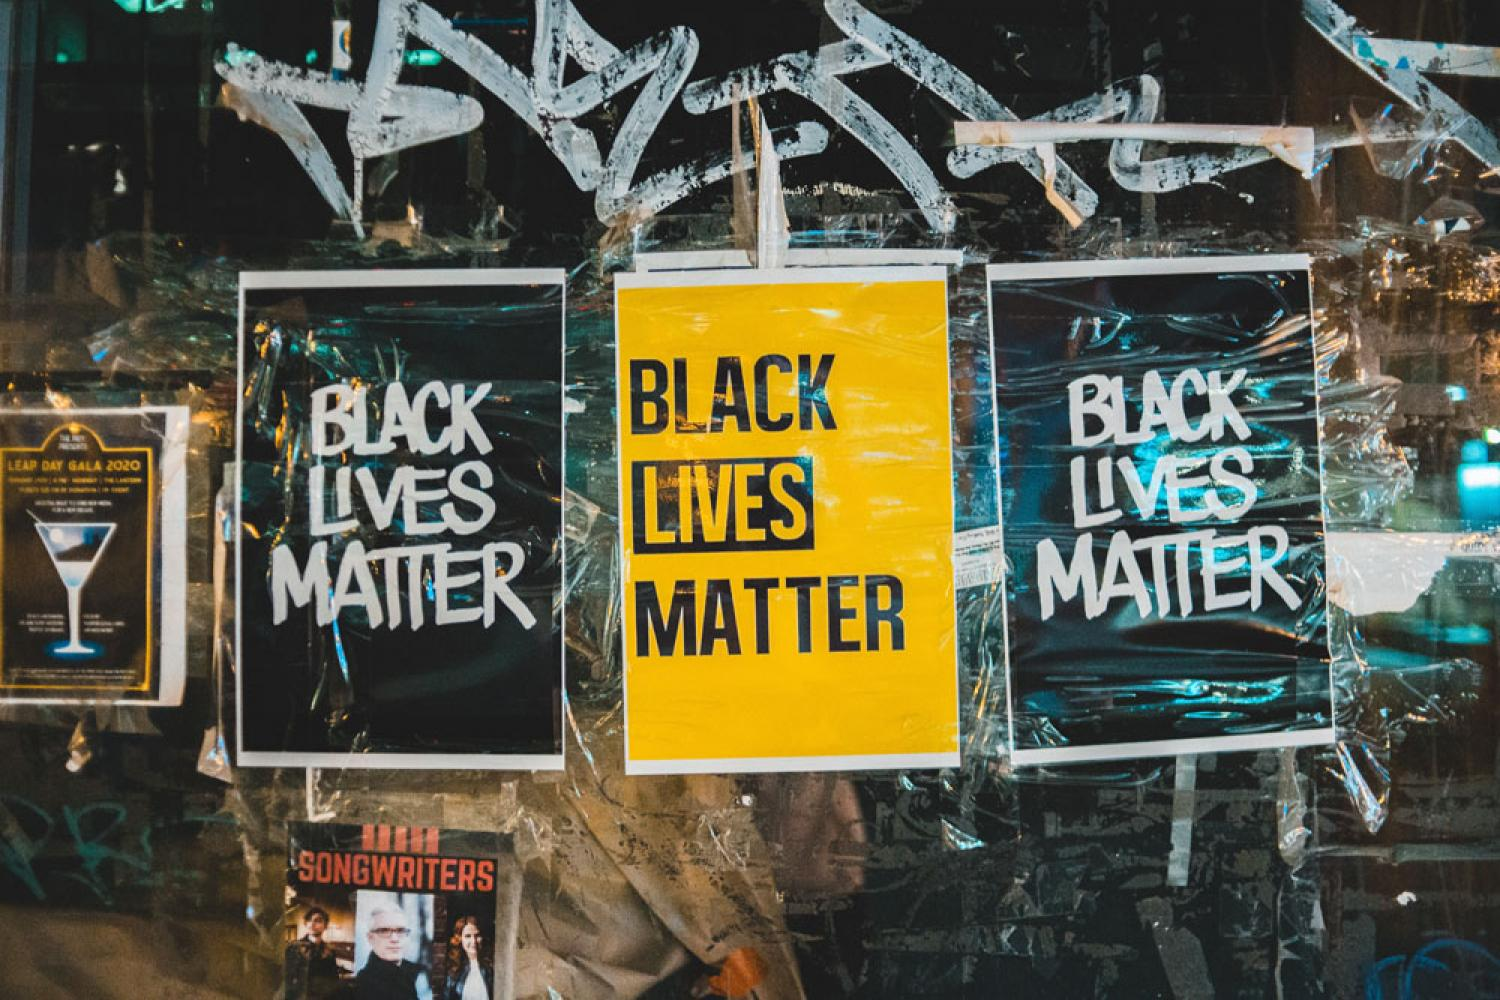 Photo by Erik Mclean from Pexels. Image of three banners, from right to left, Black banner that reads Black Lives Matter, center banner is yellow and reads Black Lives Matter, and the right banner is black and reads Black Lives Matter.